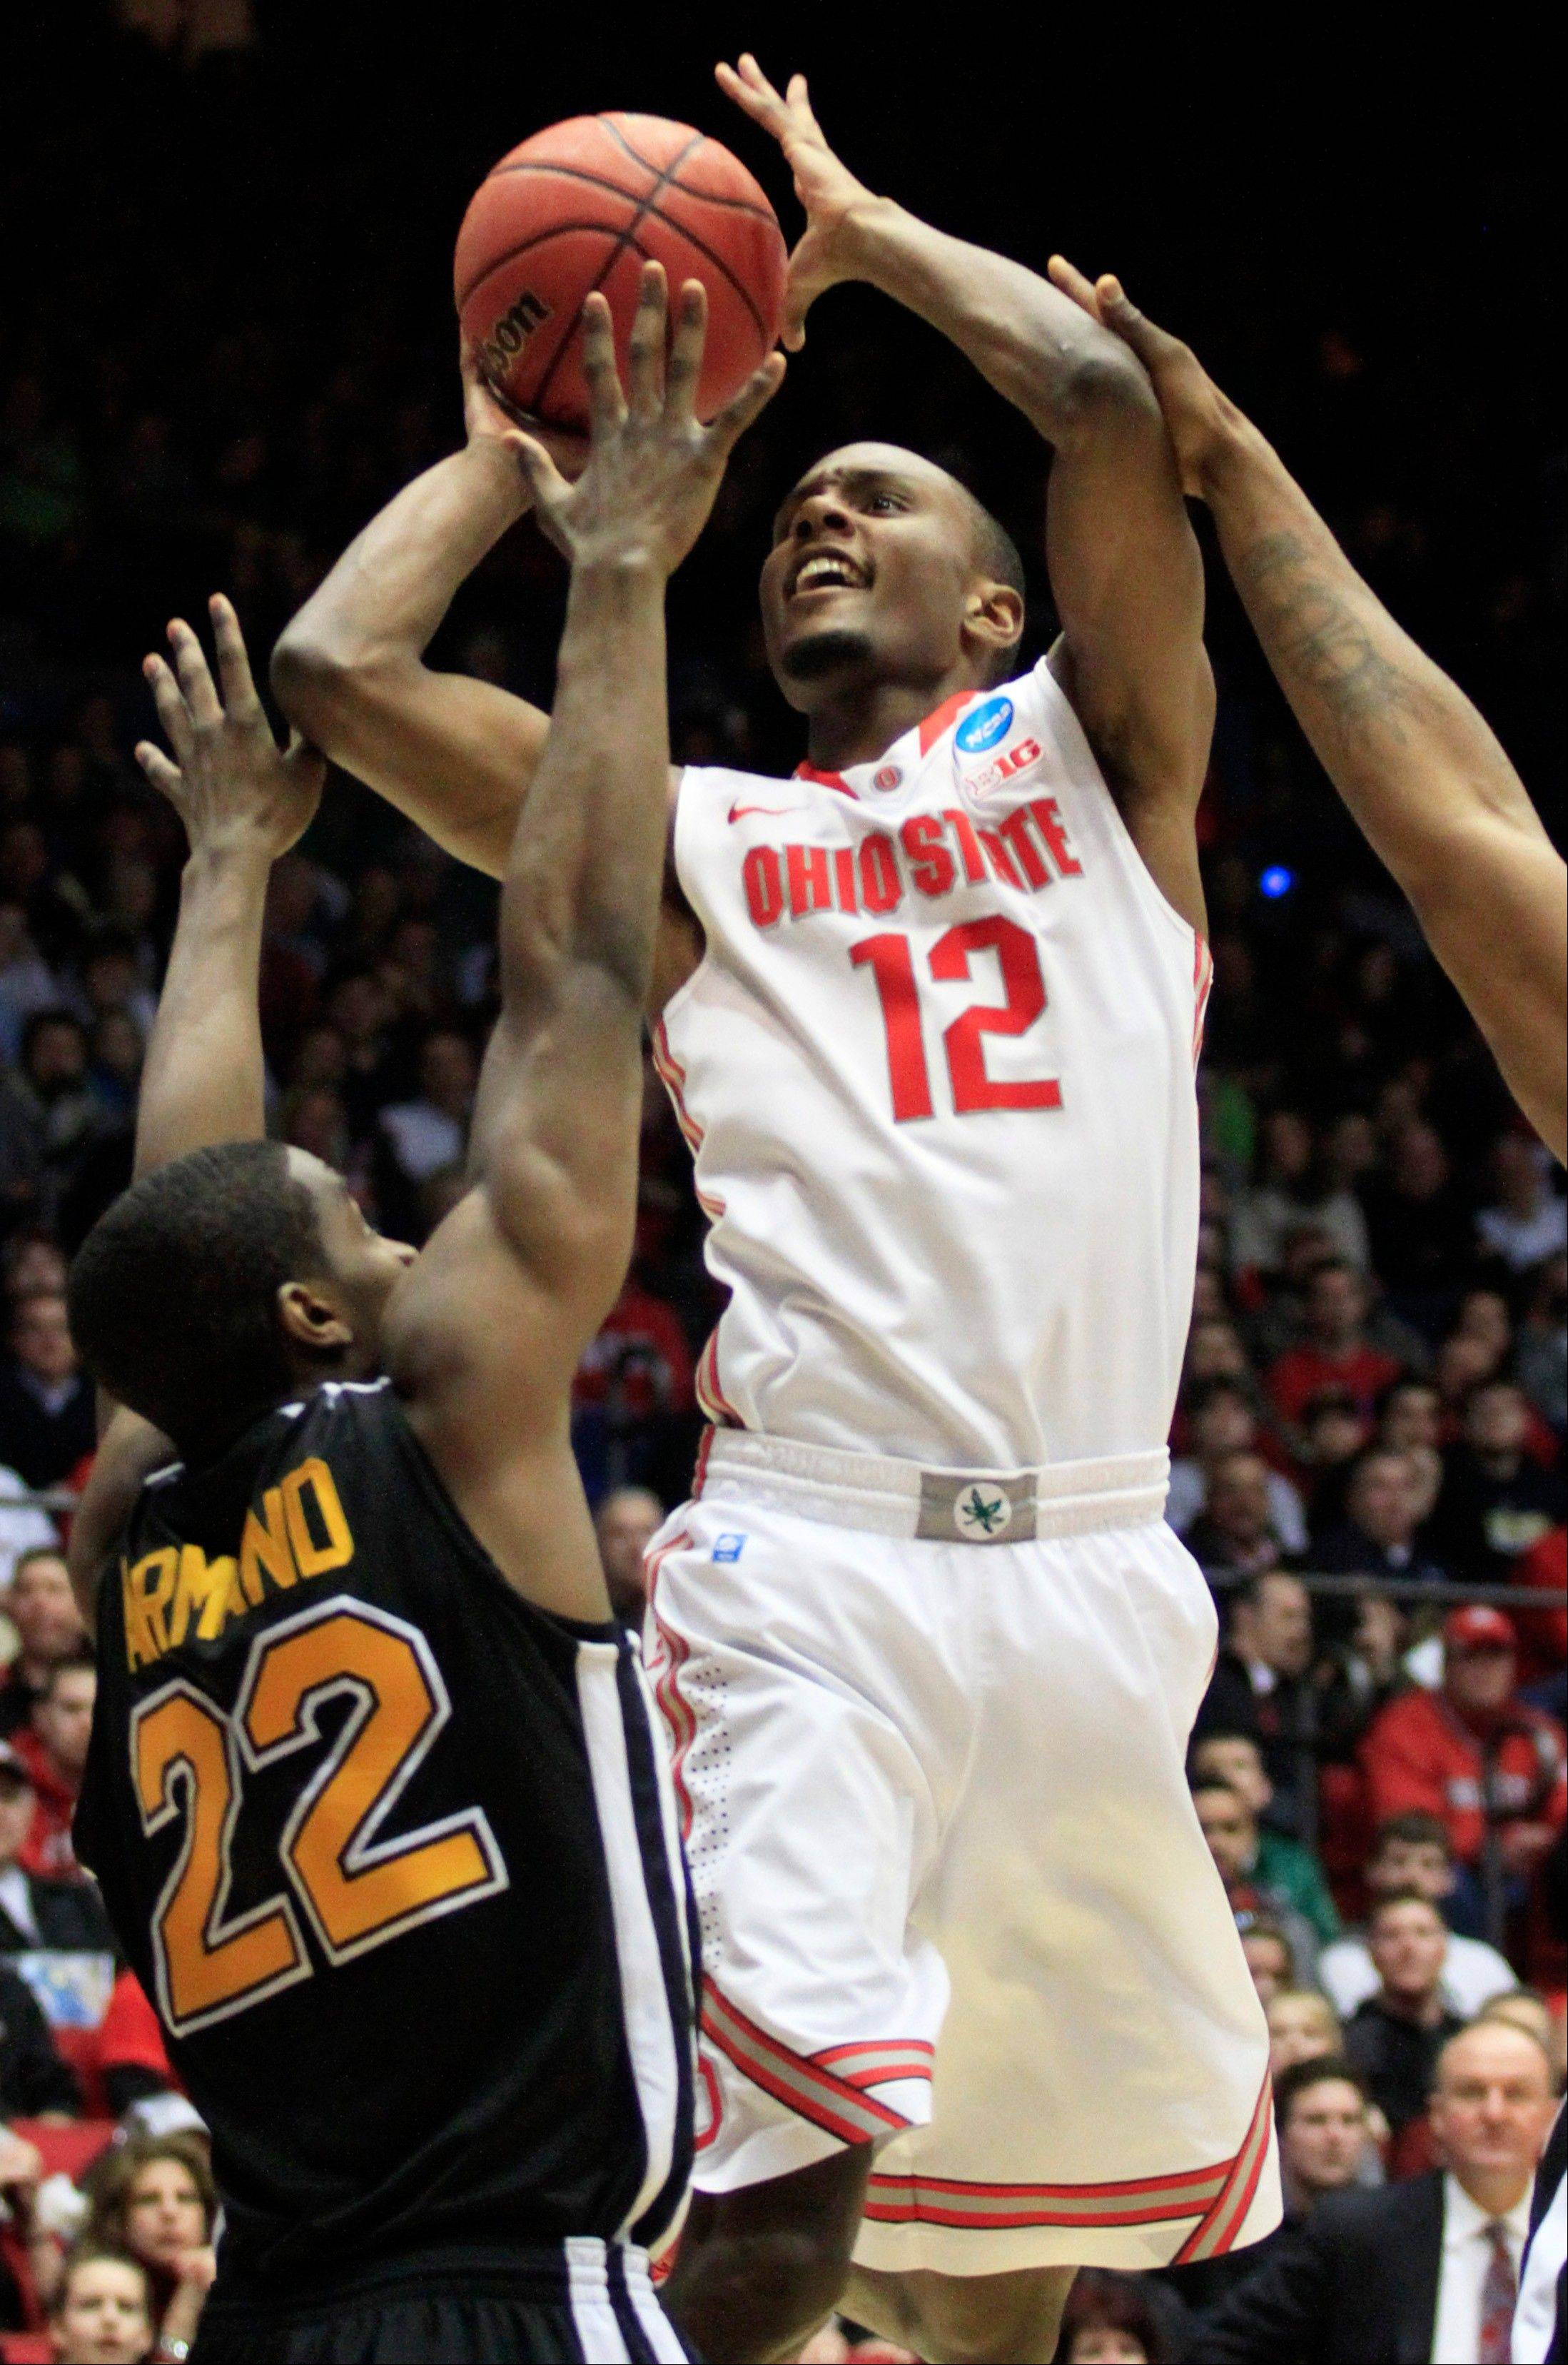 Ohio State forward Sam Thompson (12) shoots against Iona guard Sean Armand (22) in the second half of a second-round game at the NCAA college basketball tournament, Friday, March 22, 2013, in Dayton, Ohio.